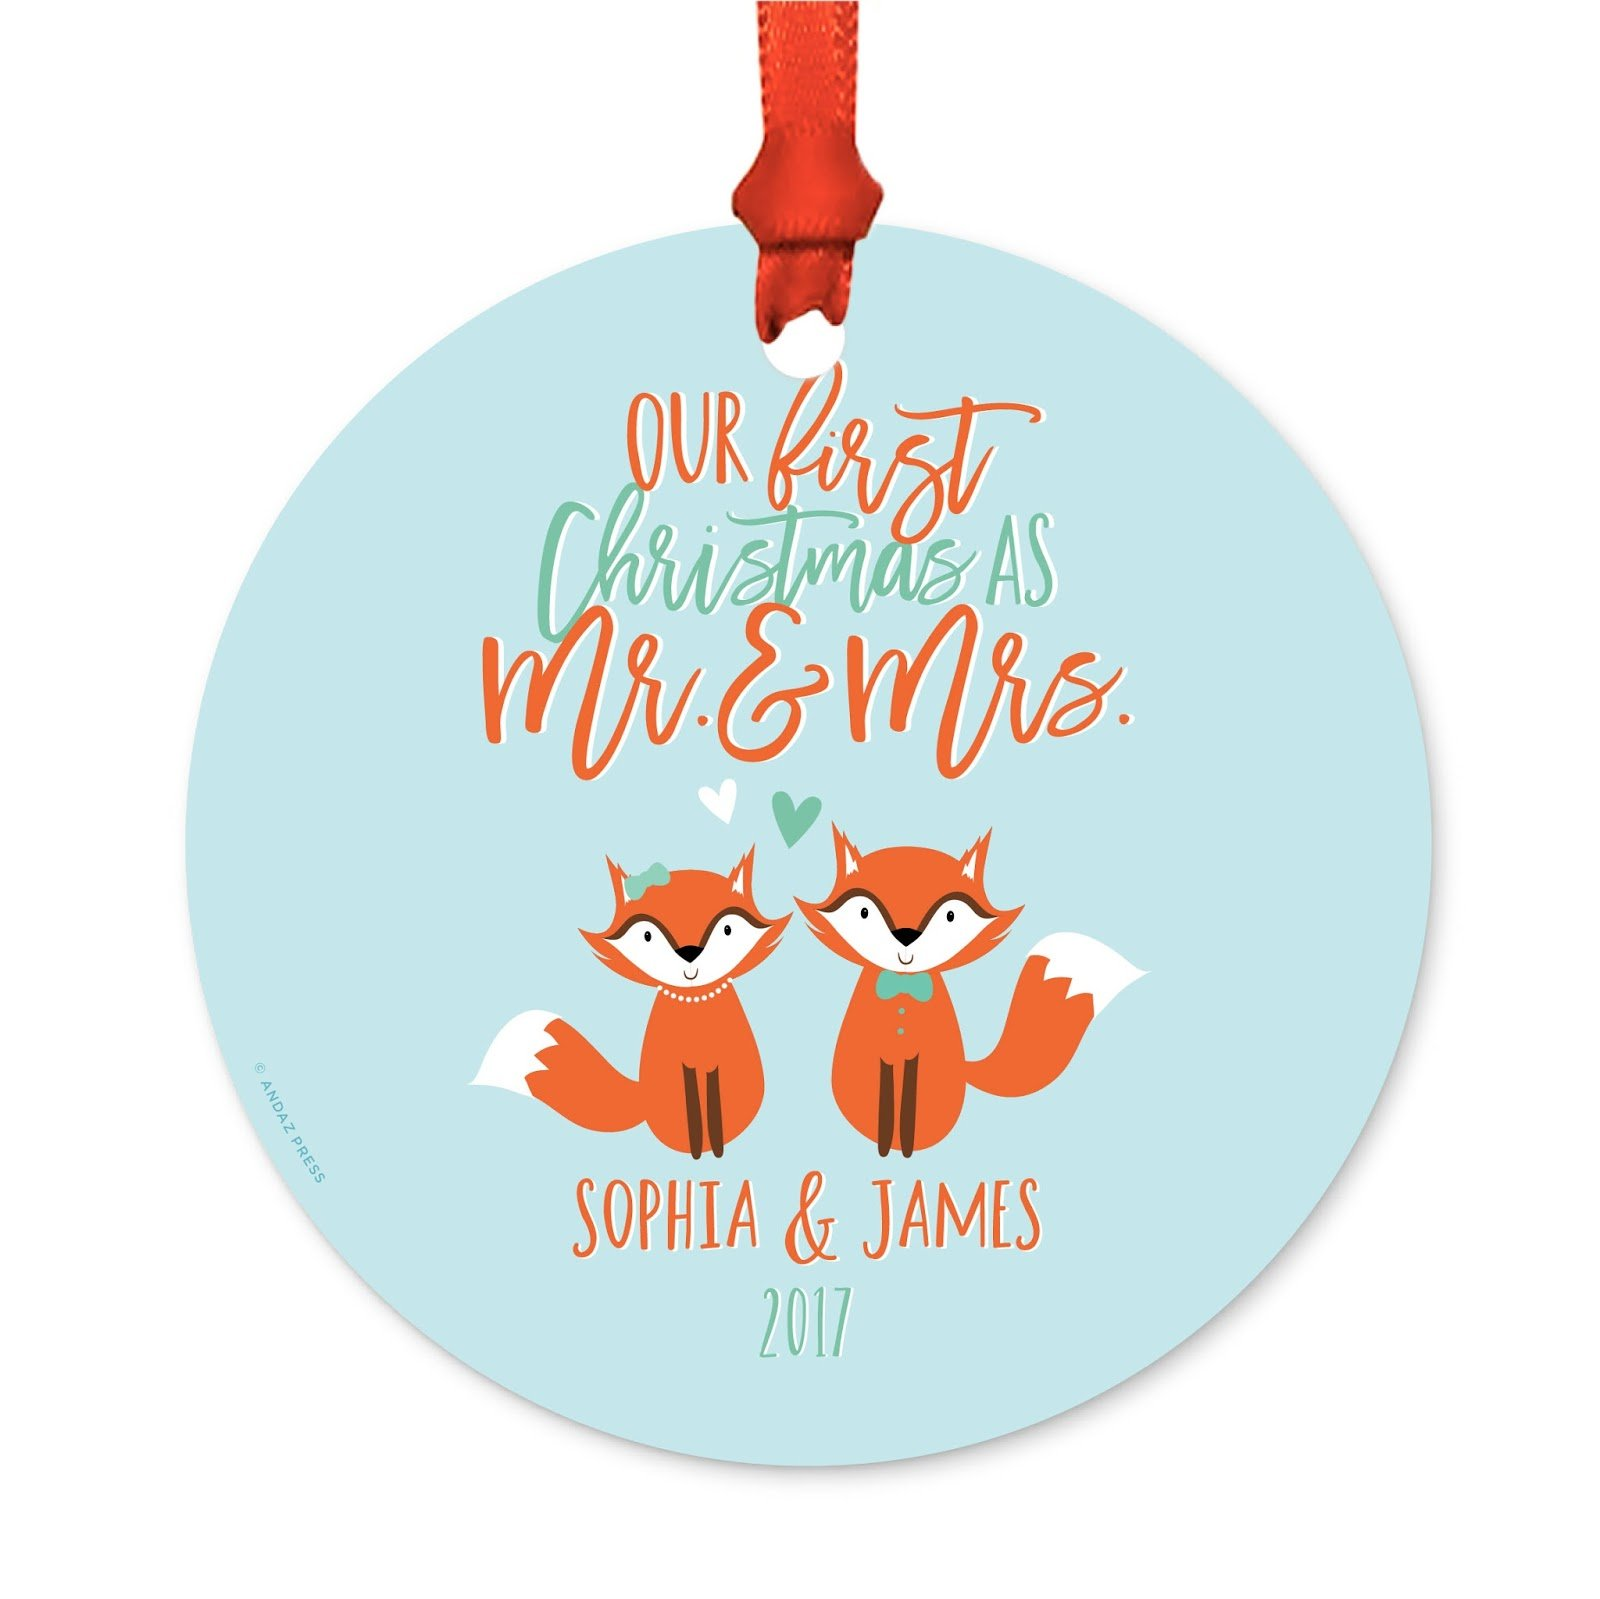 Andaz Press Personalized Wedding Metal Christmas Ornament, Our First Christmas As Mr. and Mrs. 2018, Holiday Love Foxes, 1-Pack, Sophia & James, Includes Ribbon and Gift Bag, Custom Name